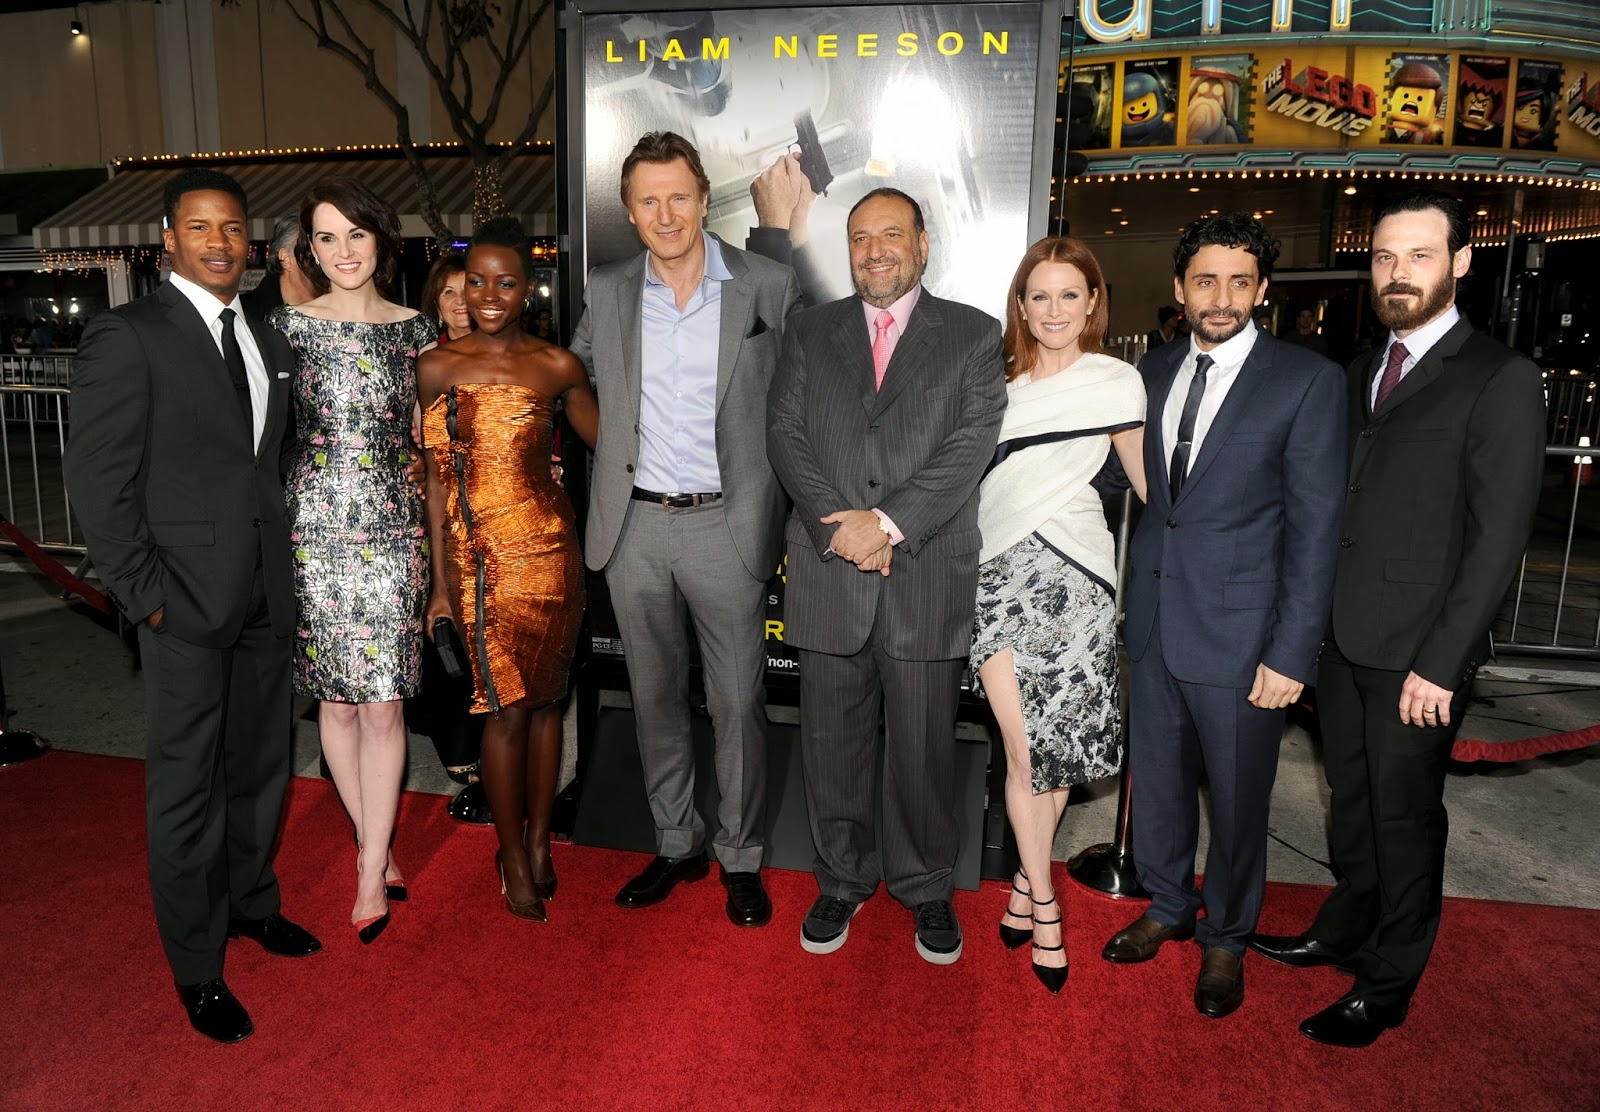 ¿Cuál es el inicio de alto? - Página 3 Actors+Nate+Parker,+Michelle+Dockery,+Lupita+Nyong'o+and+Liam+Neeson,+producer+Joel+Silver,+actress+Julianne+Moore,+director+Jaume+Collet-Serra+and+actor+Scoot+McNairy